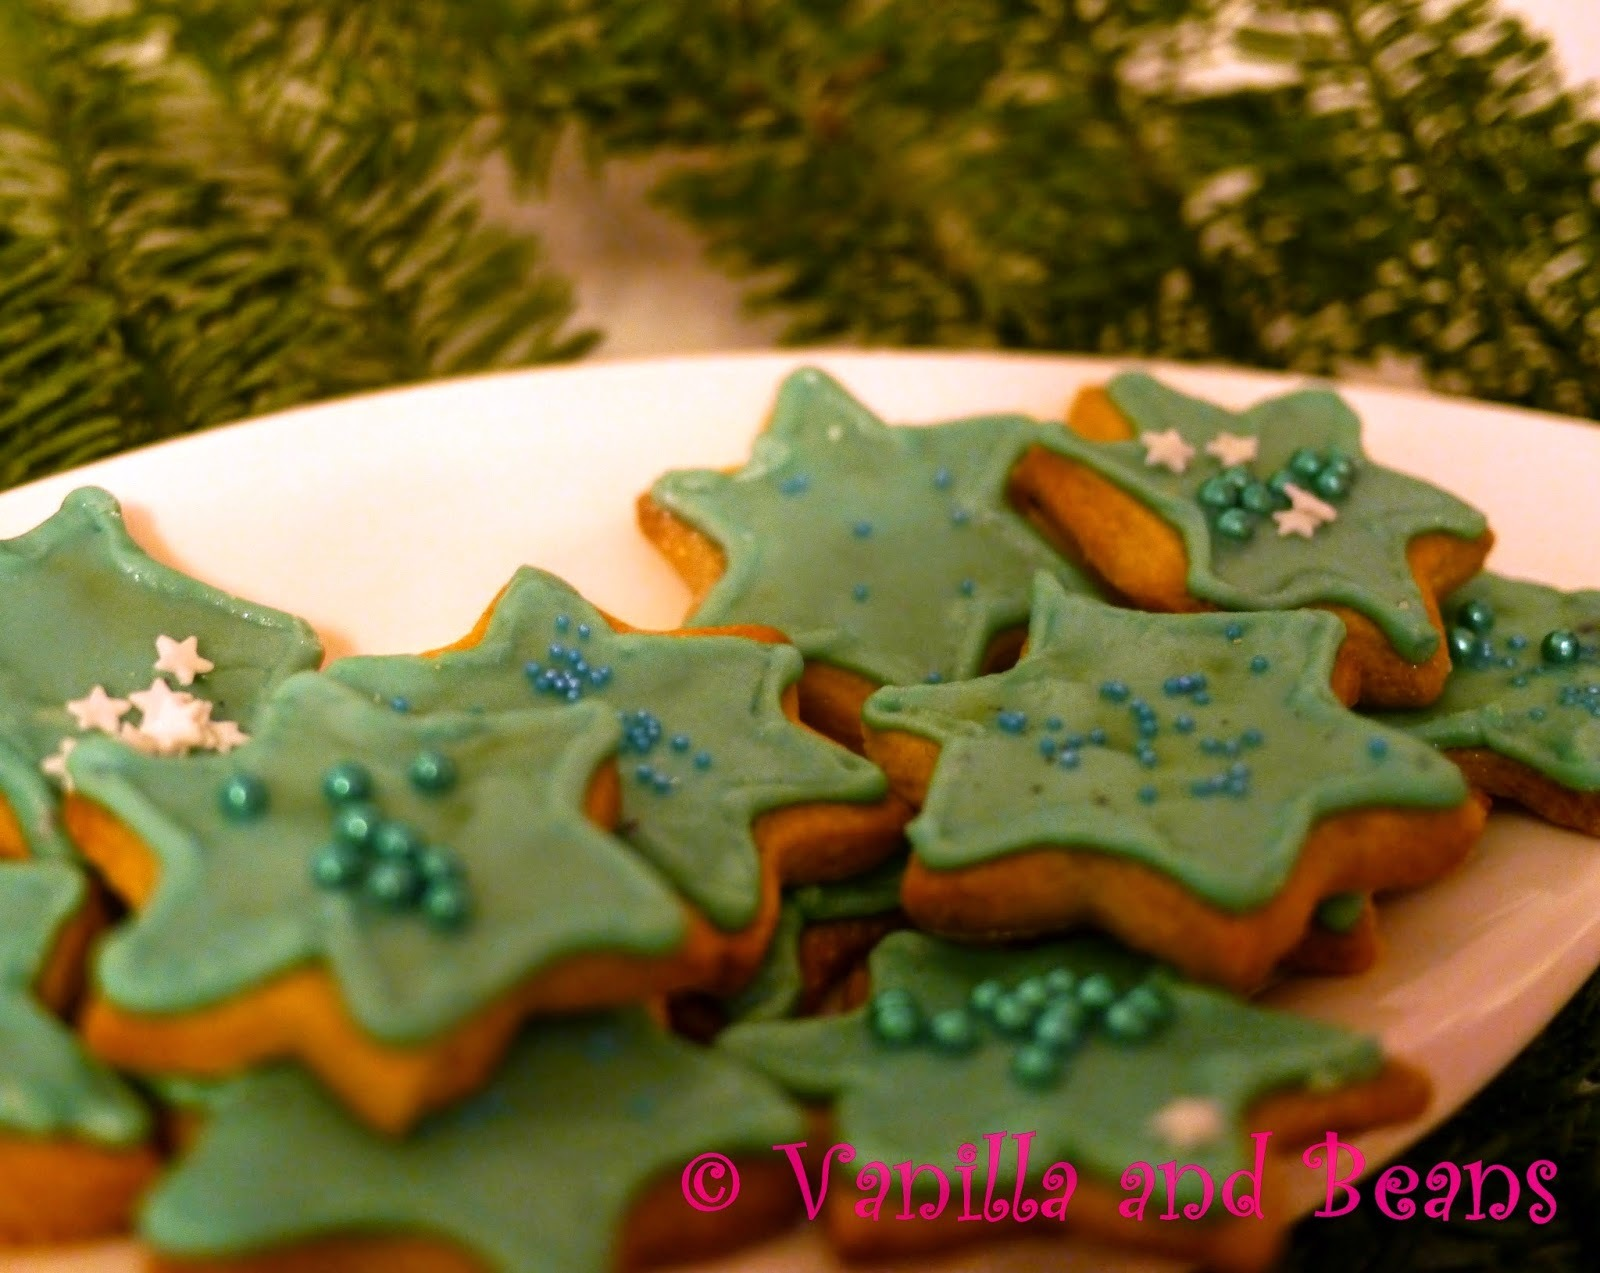 Vegane Weihnacht II: Royal Icing